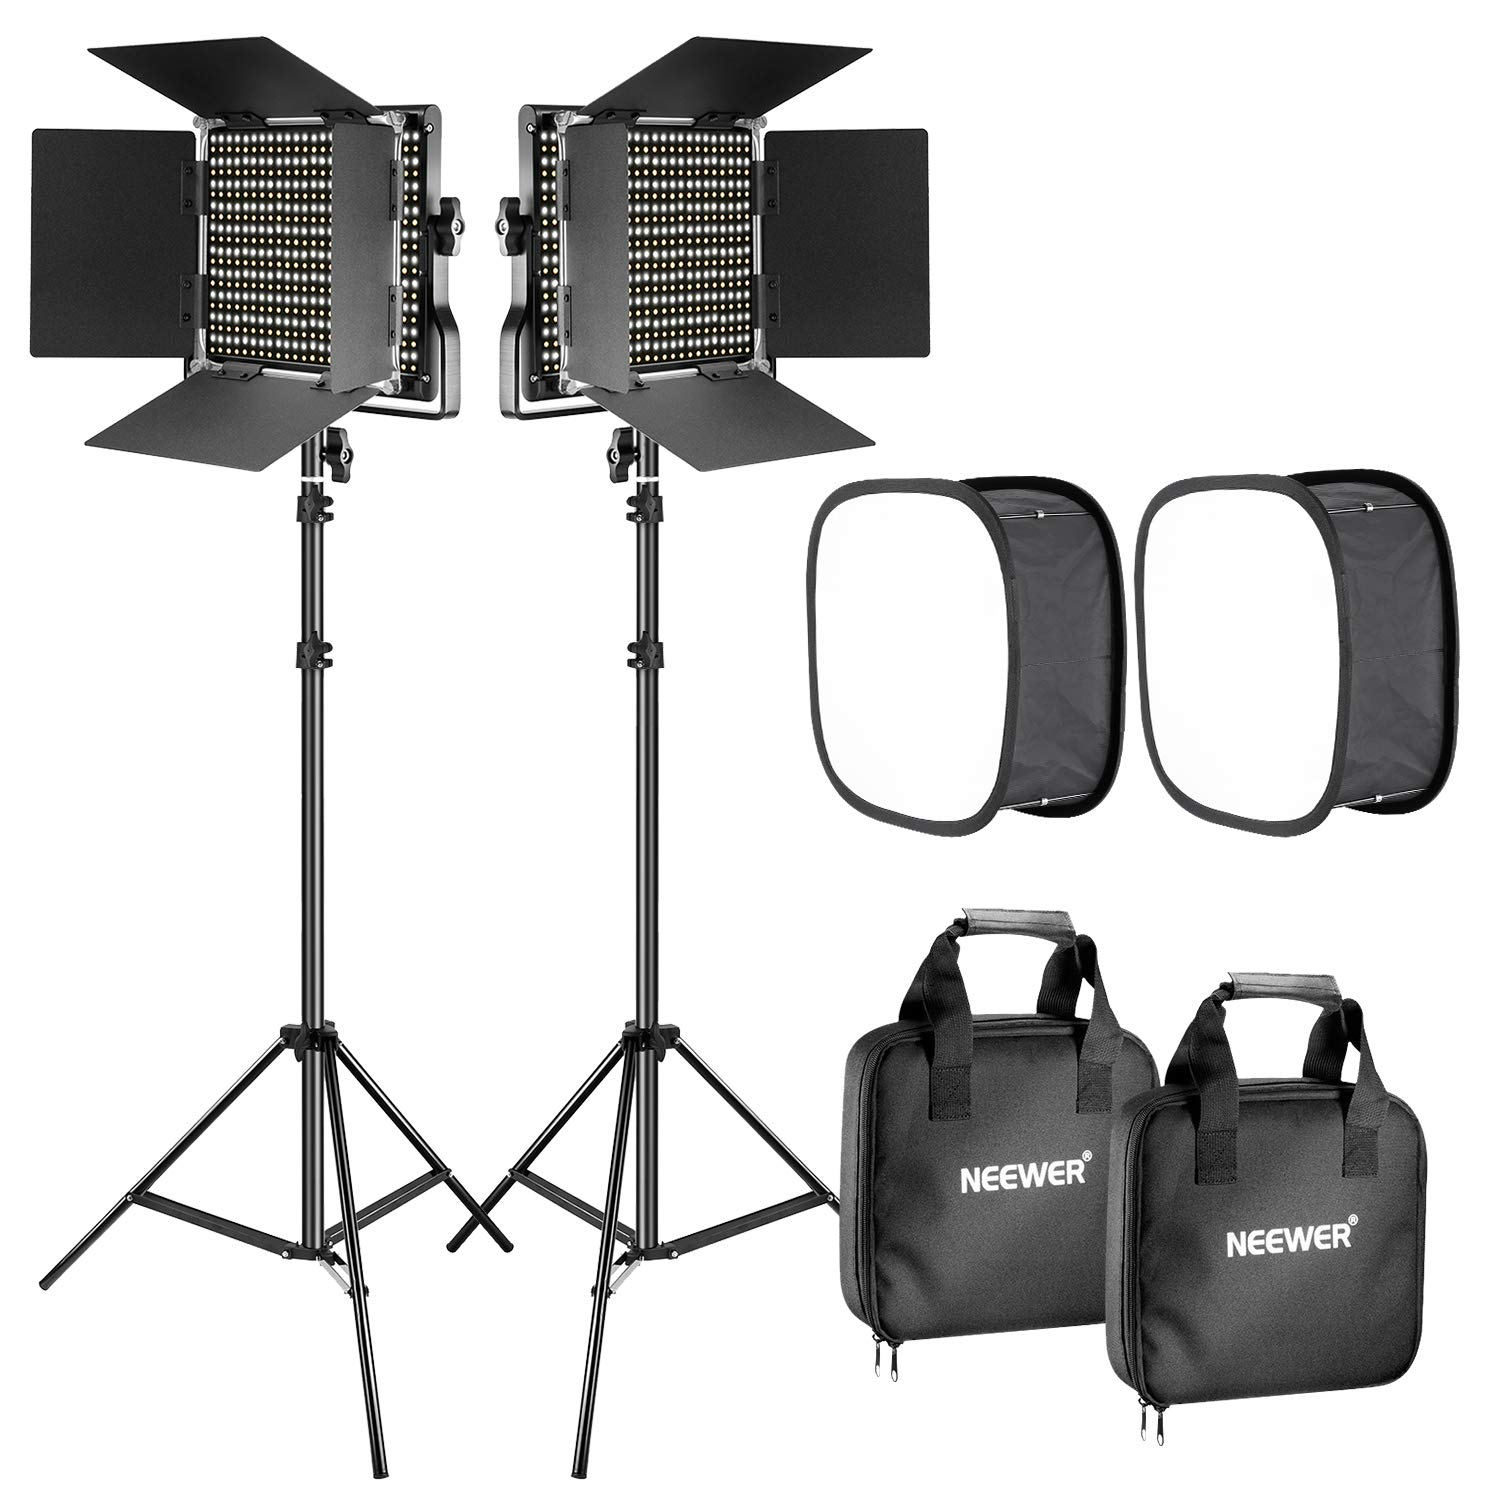 Neewer 2 Pieces Bi-color 660 LED Video Light with Stand and Softbox Kit: (2)3200-5600K CRI96+ Dimmable Light with U Bracket and Barndoor (2)Light Stand (2)Softbox for Studio Photography Video Shooting by Neewer